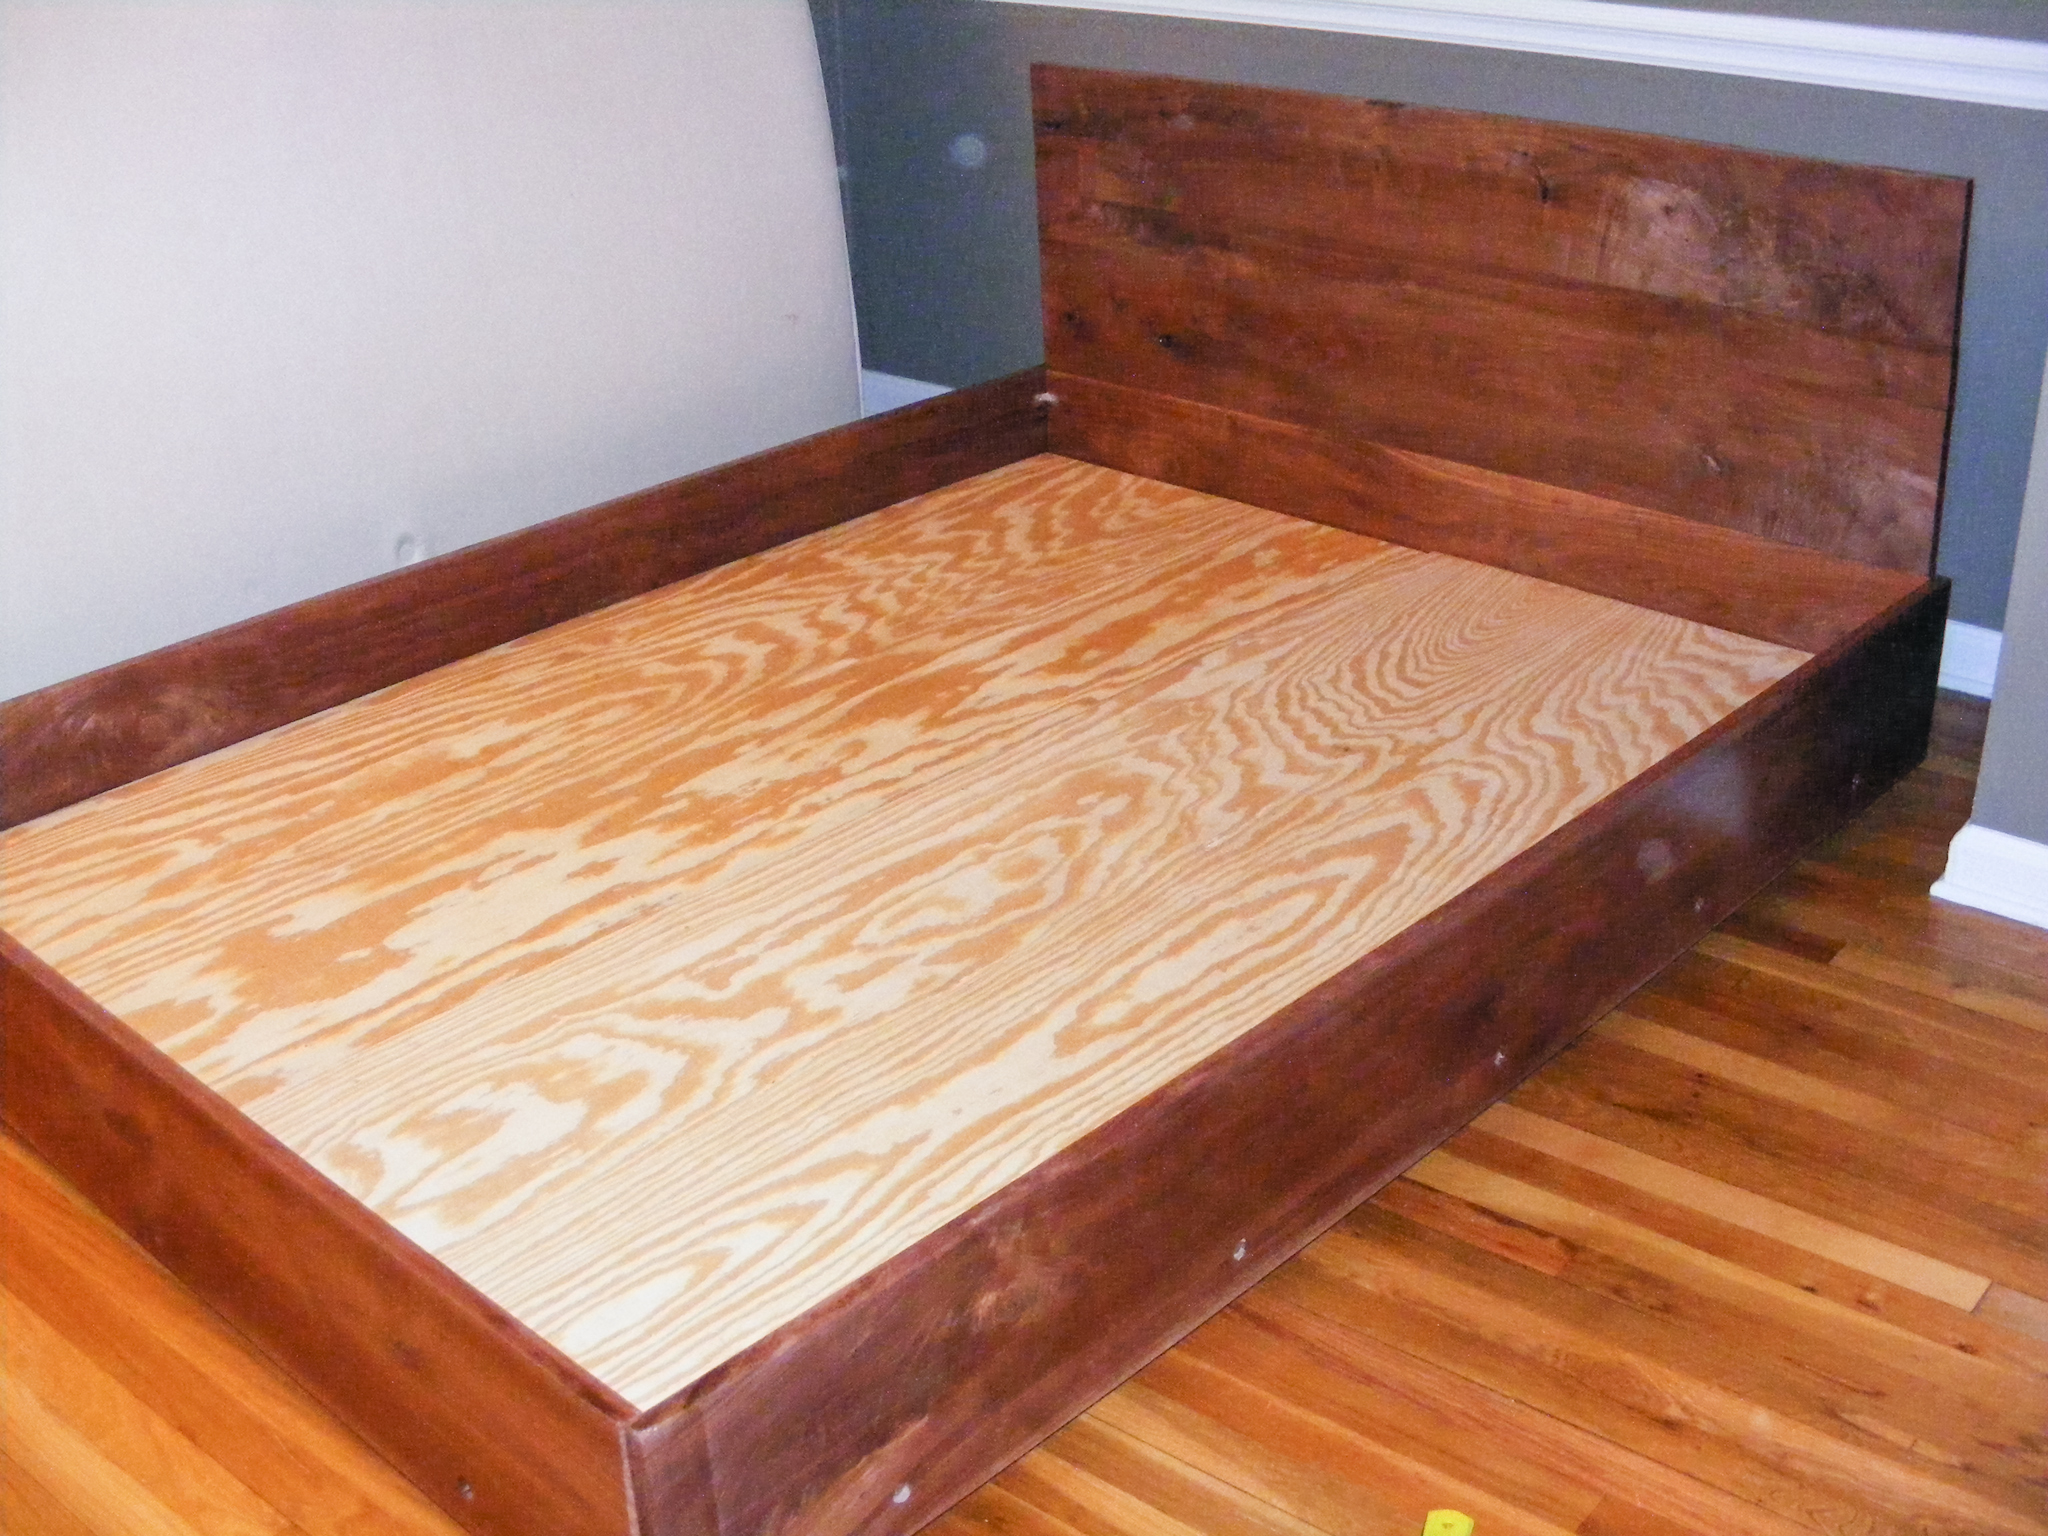 The completed bed!